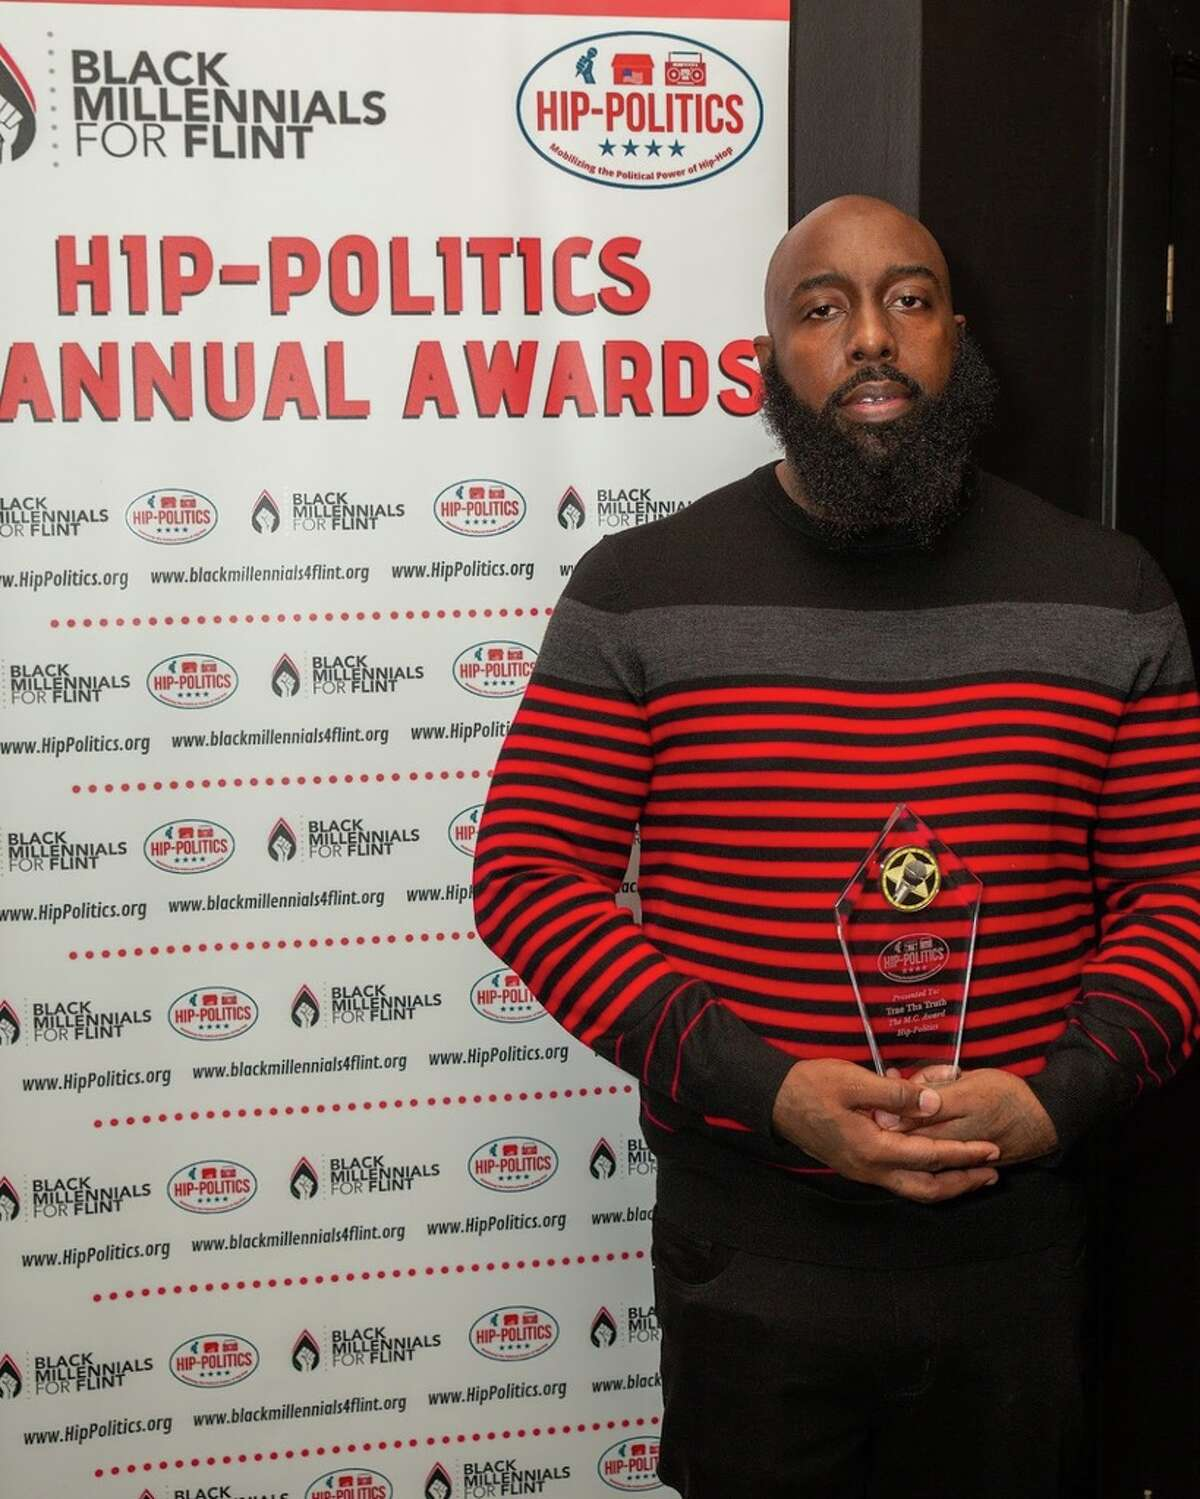 Houston's Trae Tha Truth and Scarface were honored at the Congressional Black Caucus annual conference in Washington DC for their community activism and political work